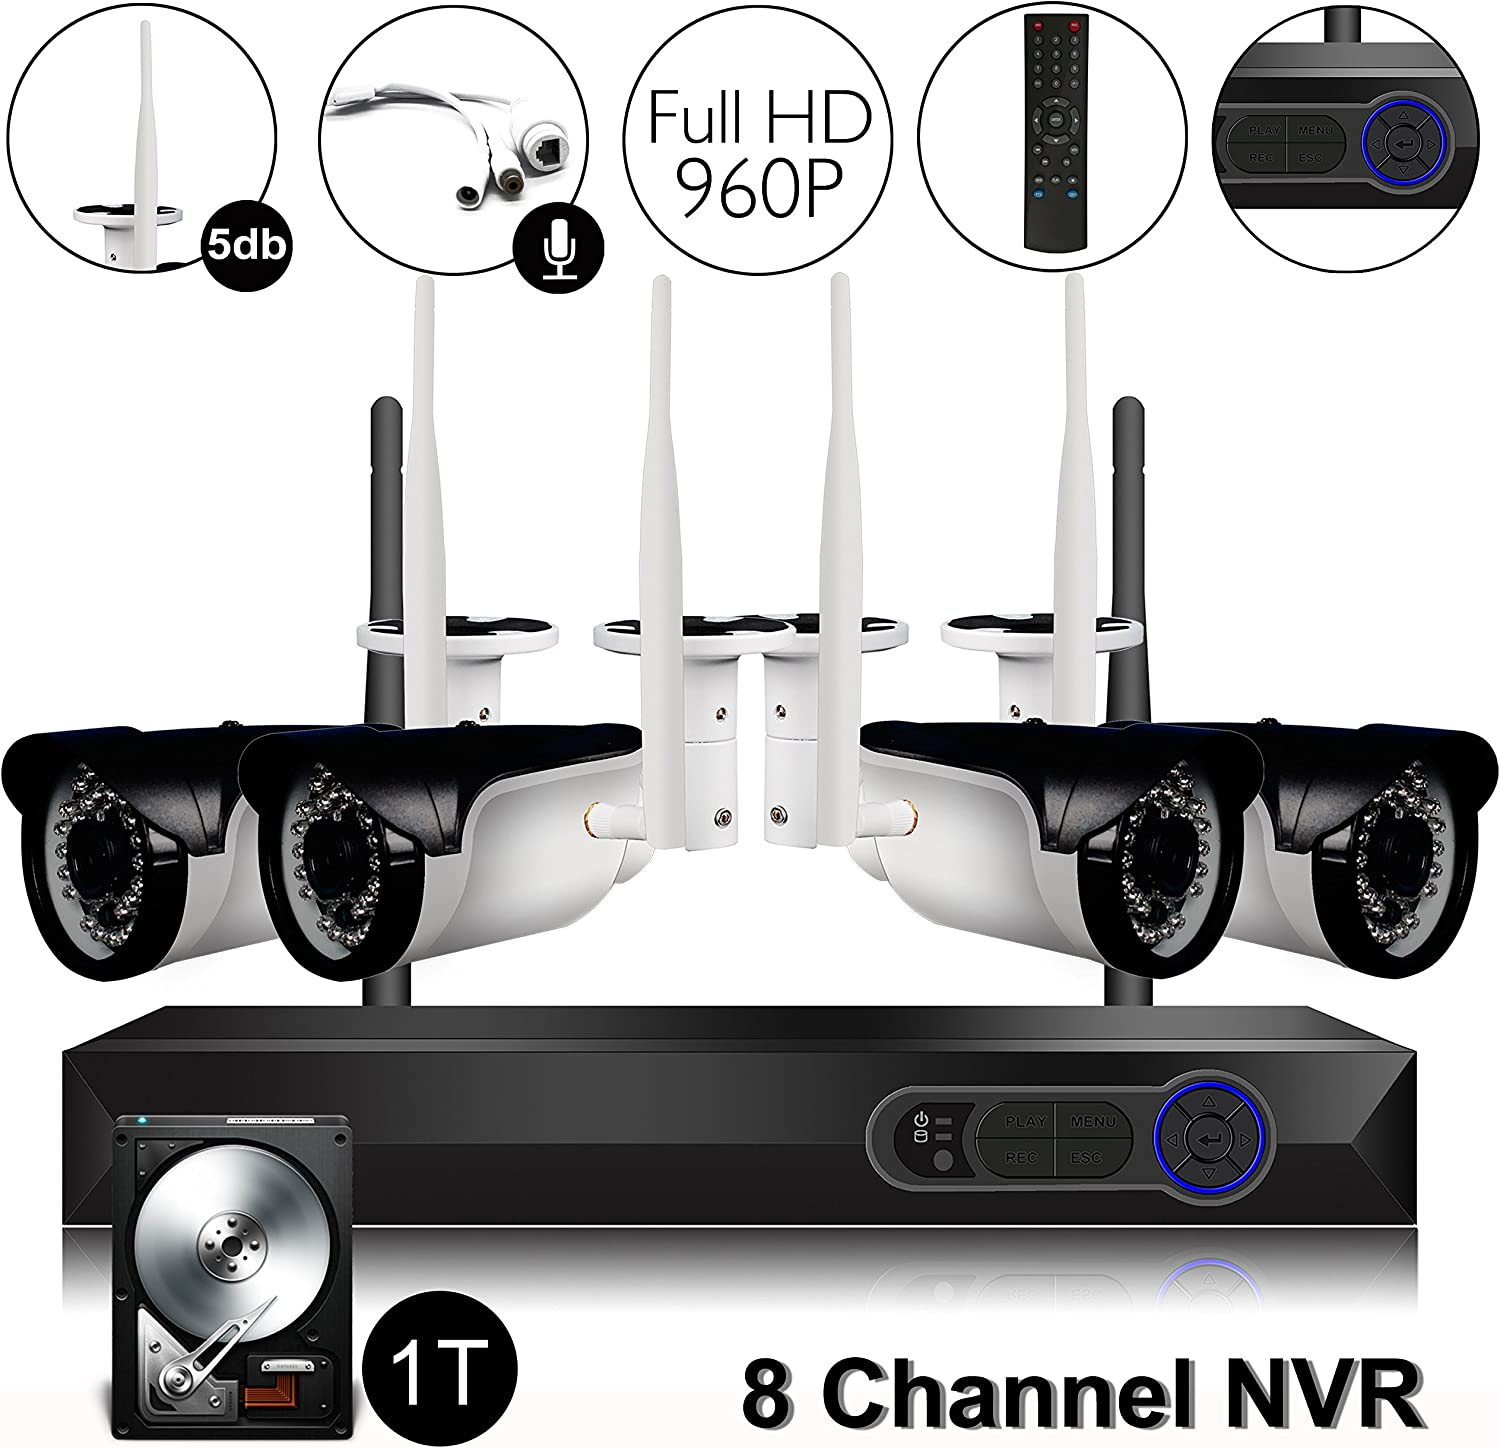 CAMVIEW Wireless Security Home Surveillance System Expandable 8CH 960P WiFi NVR 4Pcs 1.3MP 960P Wireless IP CCTV Cameras, Audio-in Plug, 65FT Night Vision, Waterproof, 1TB HDD Pre-installed